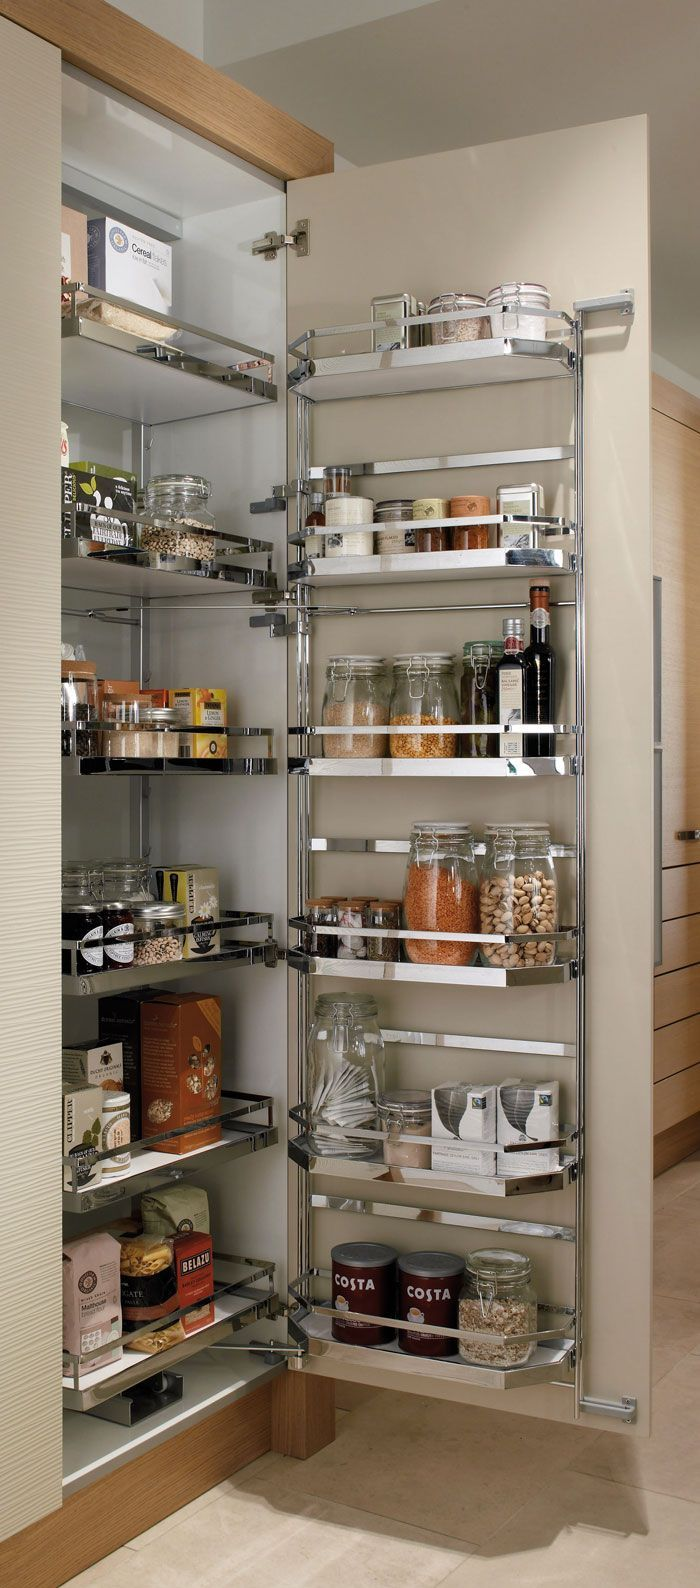 A pull out larder would be a great